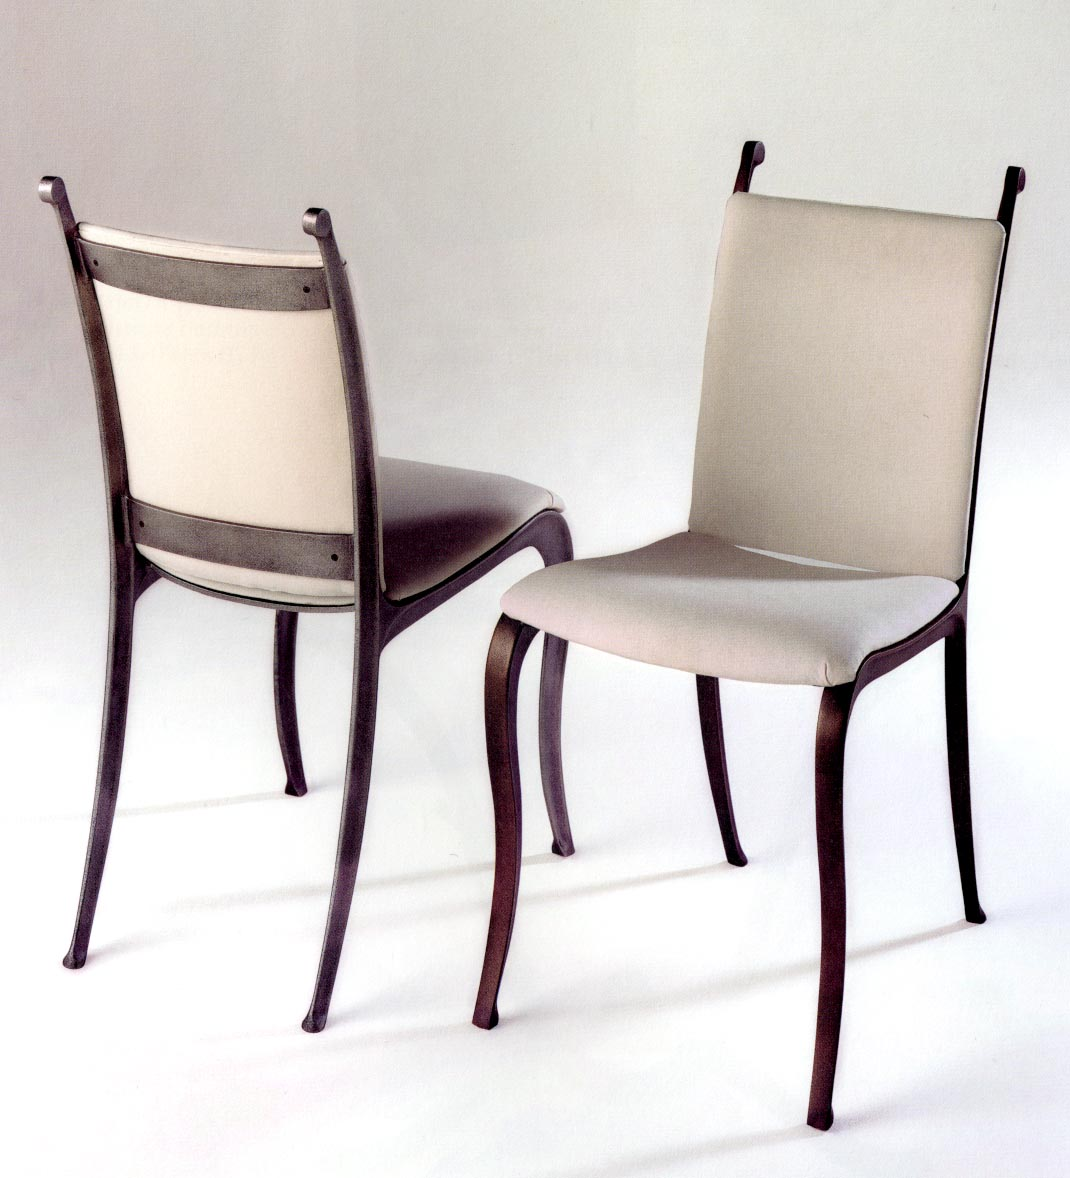 Caspian dining chairs